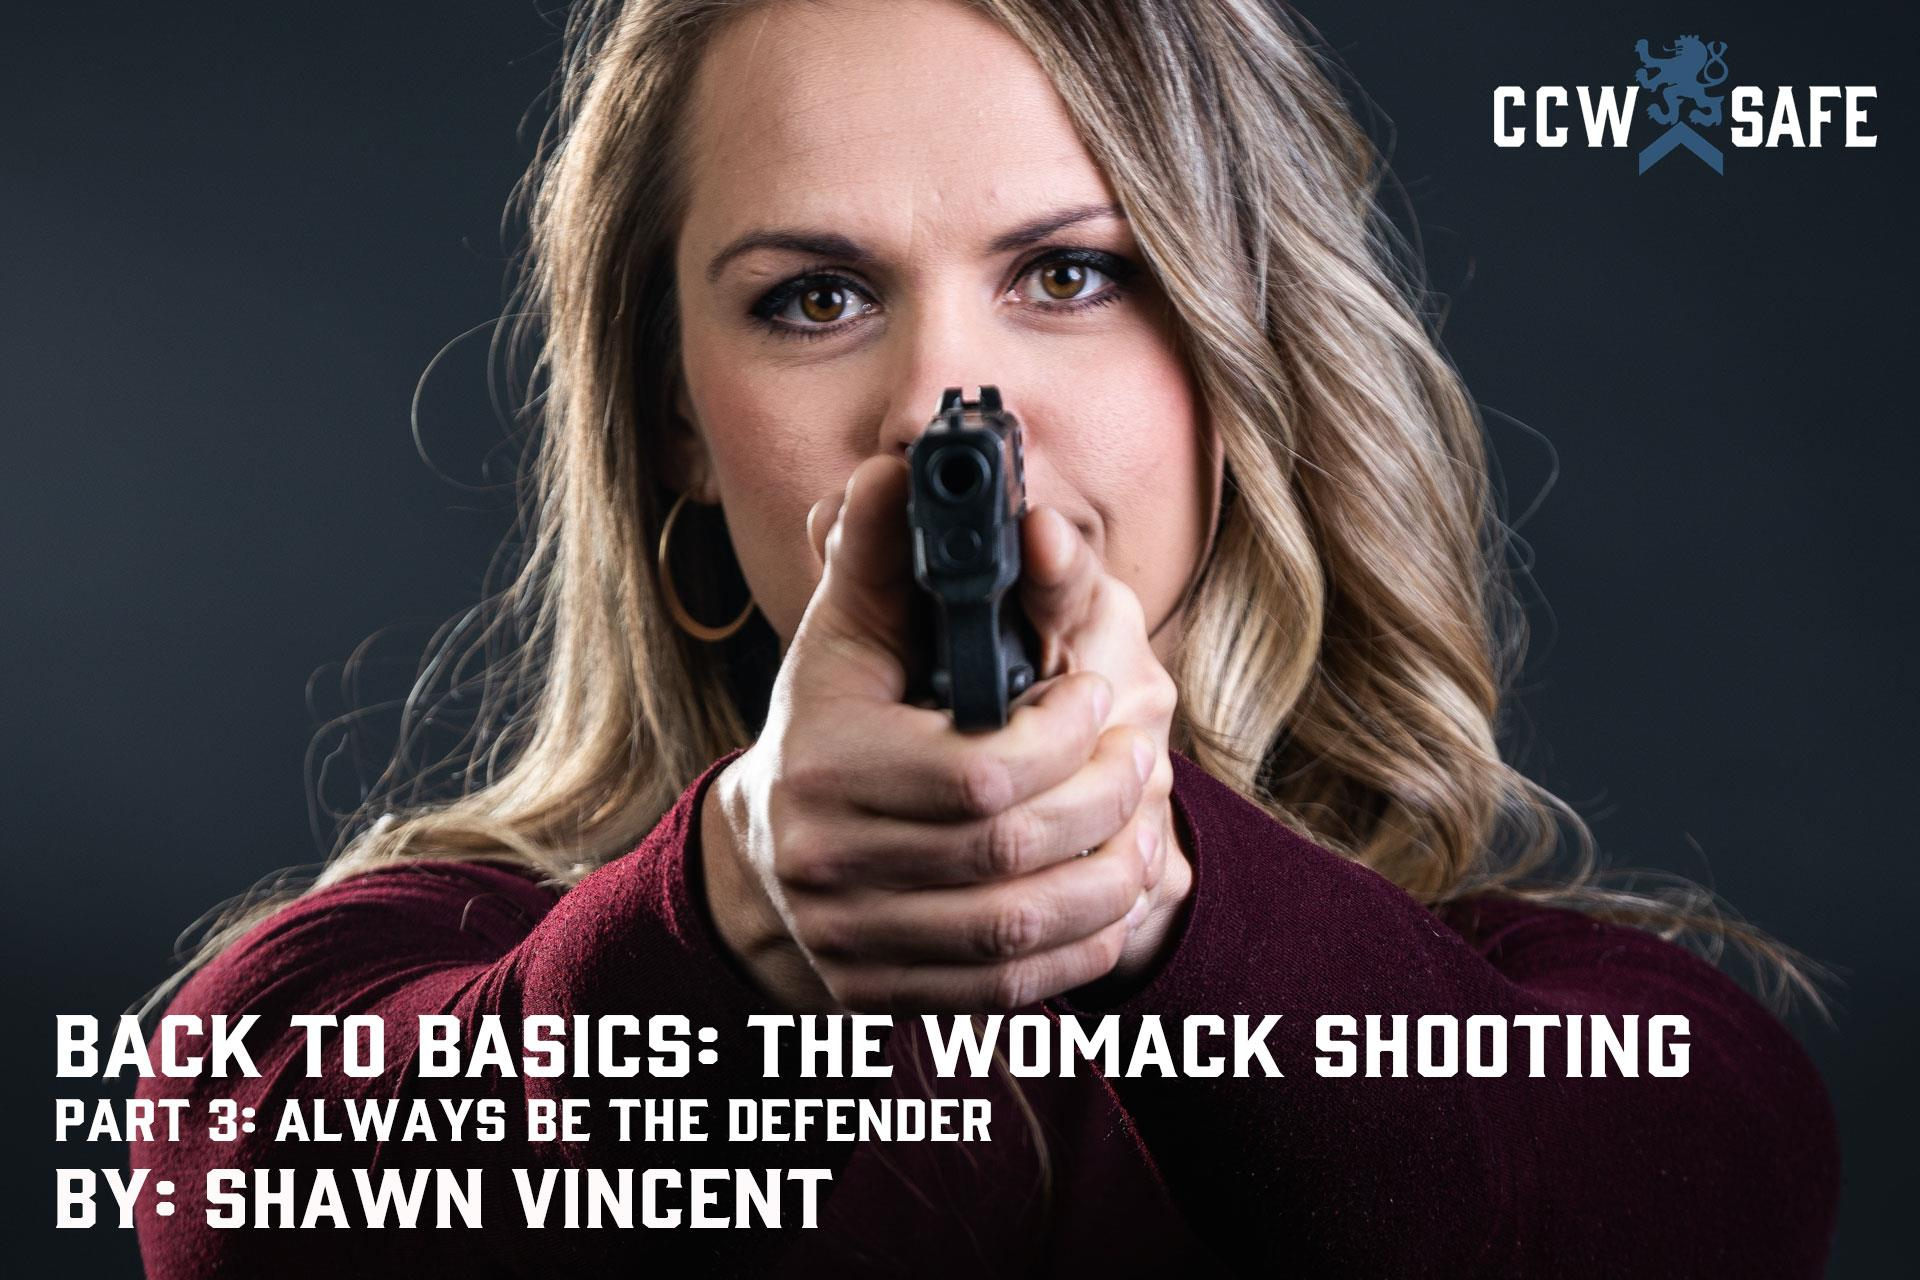 Back to Basics: The Womack Shooting Part 3